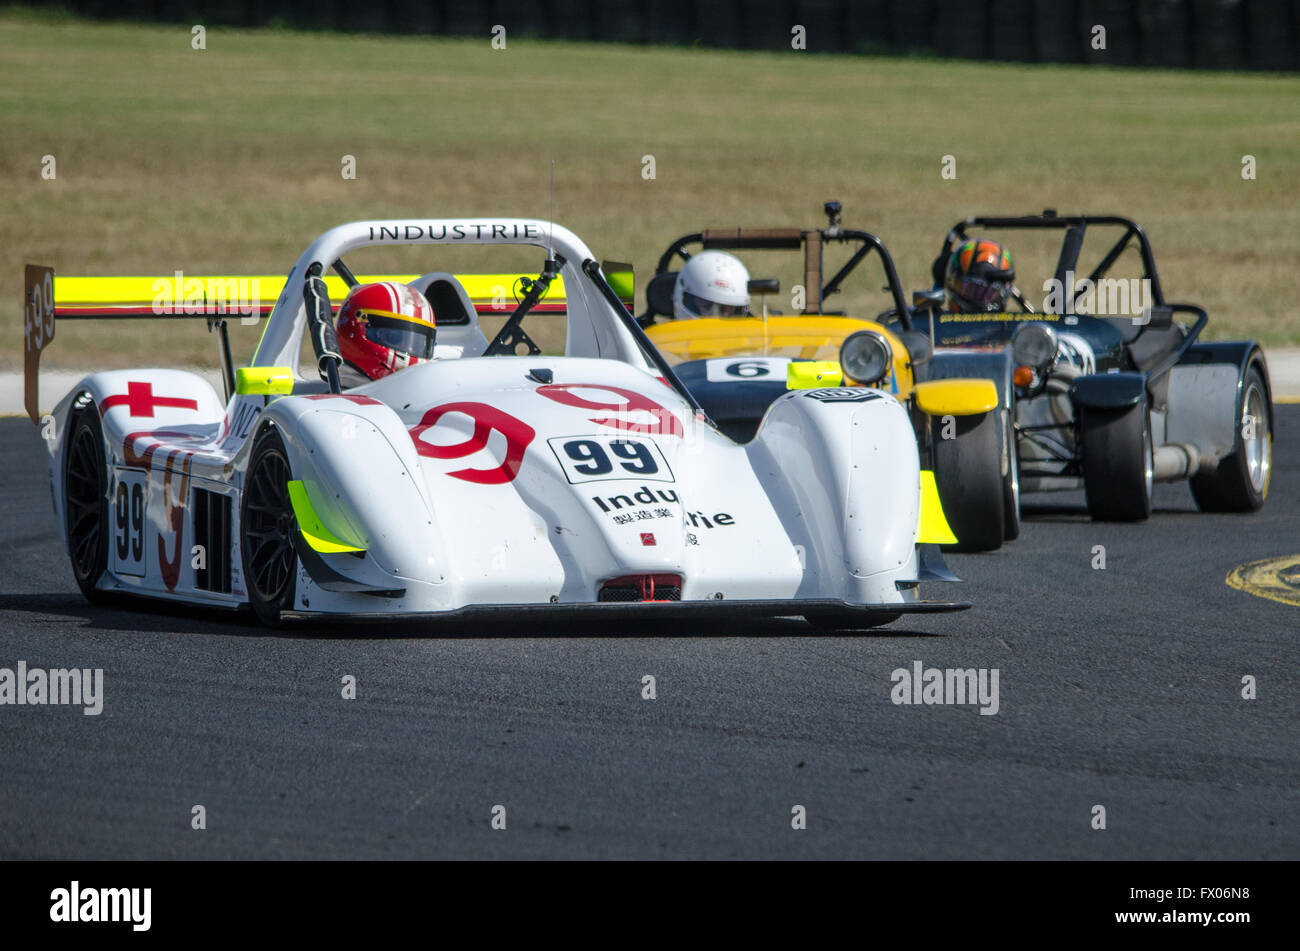 Stock Photo   Sydney, Australia. 09th Apr, 2016. Sydney Motorsport Park  Played Host To The New South Wales Motor Race Championships Round 2  Featuring A Wide ...